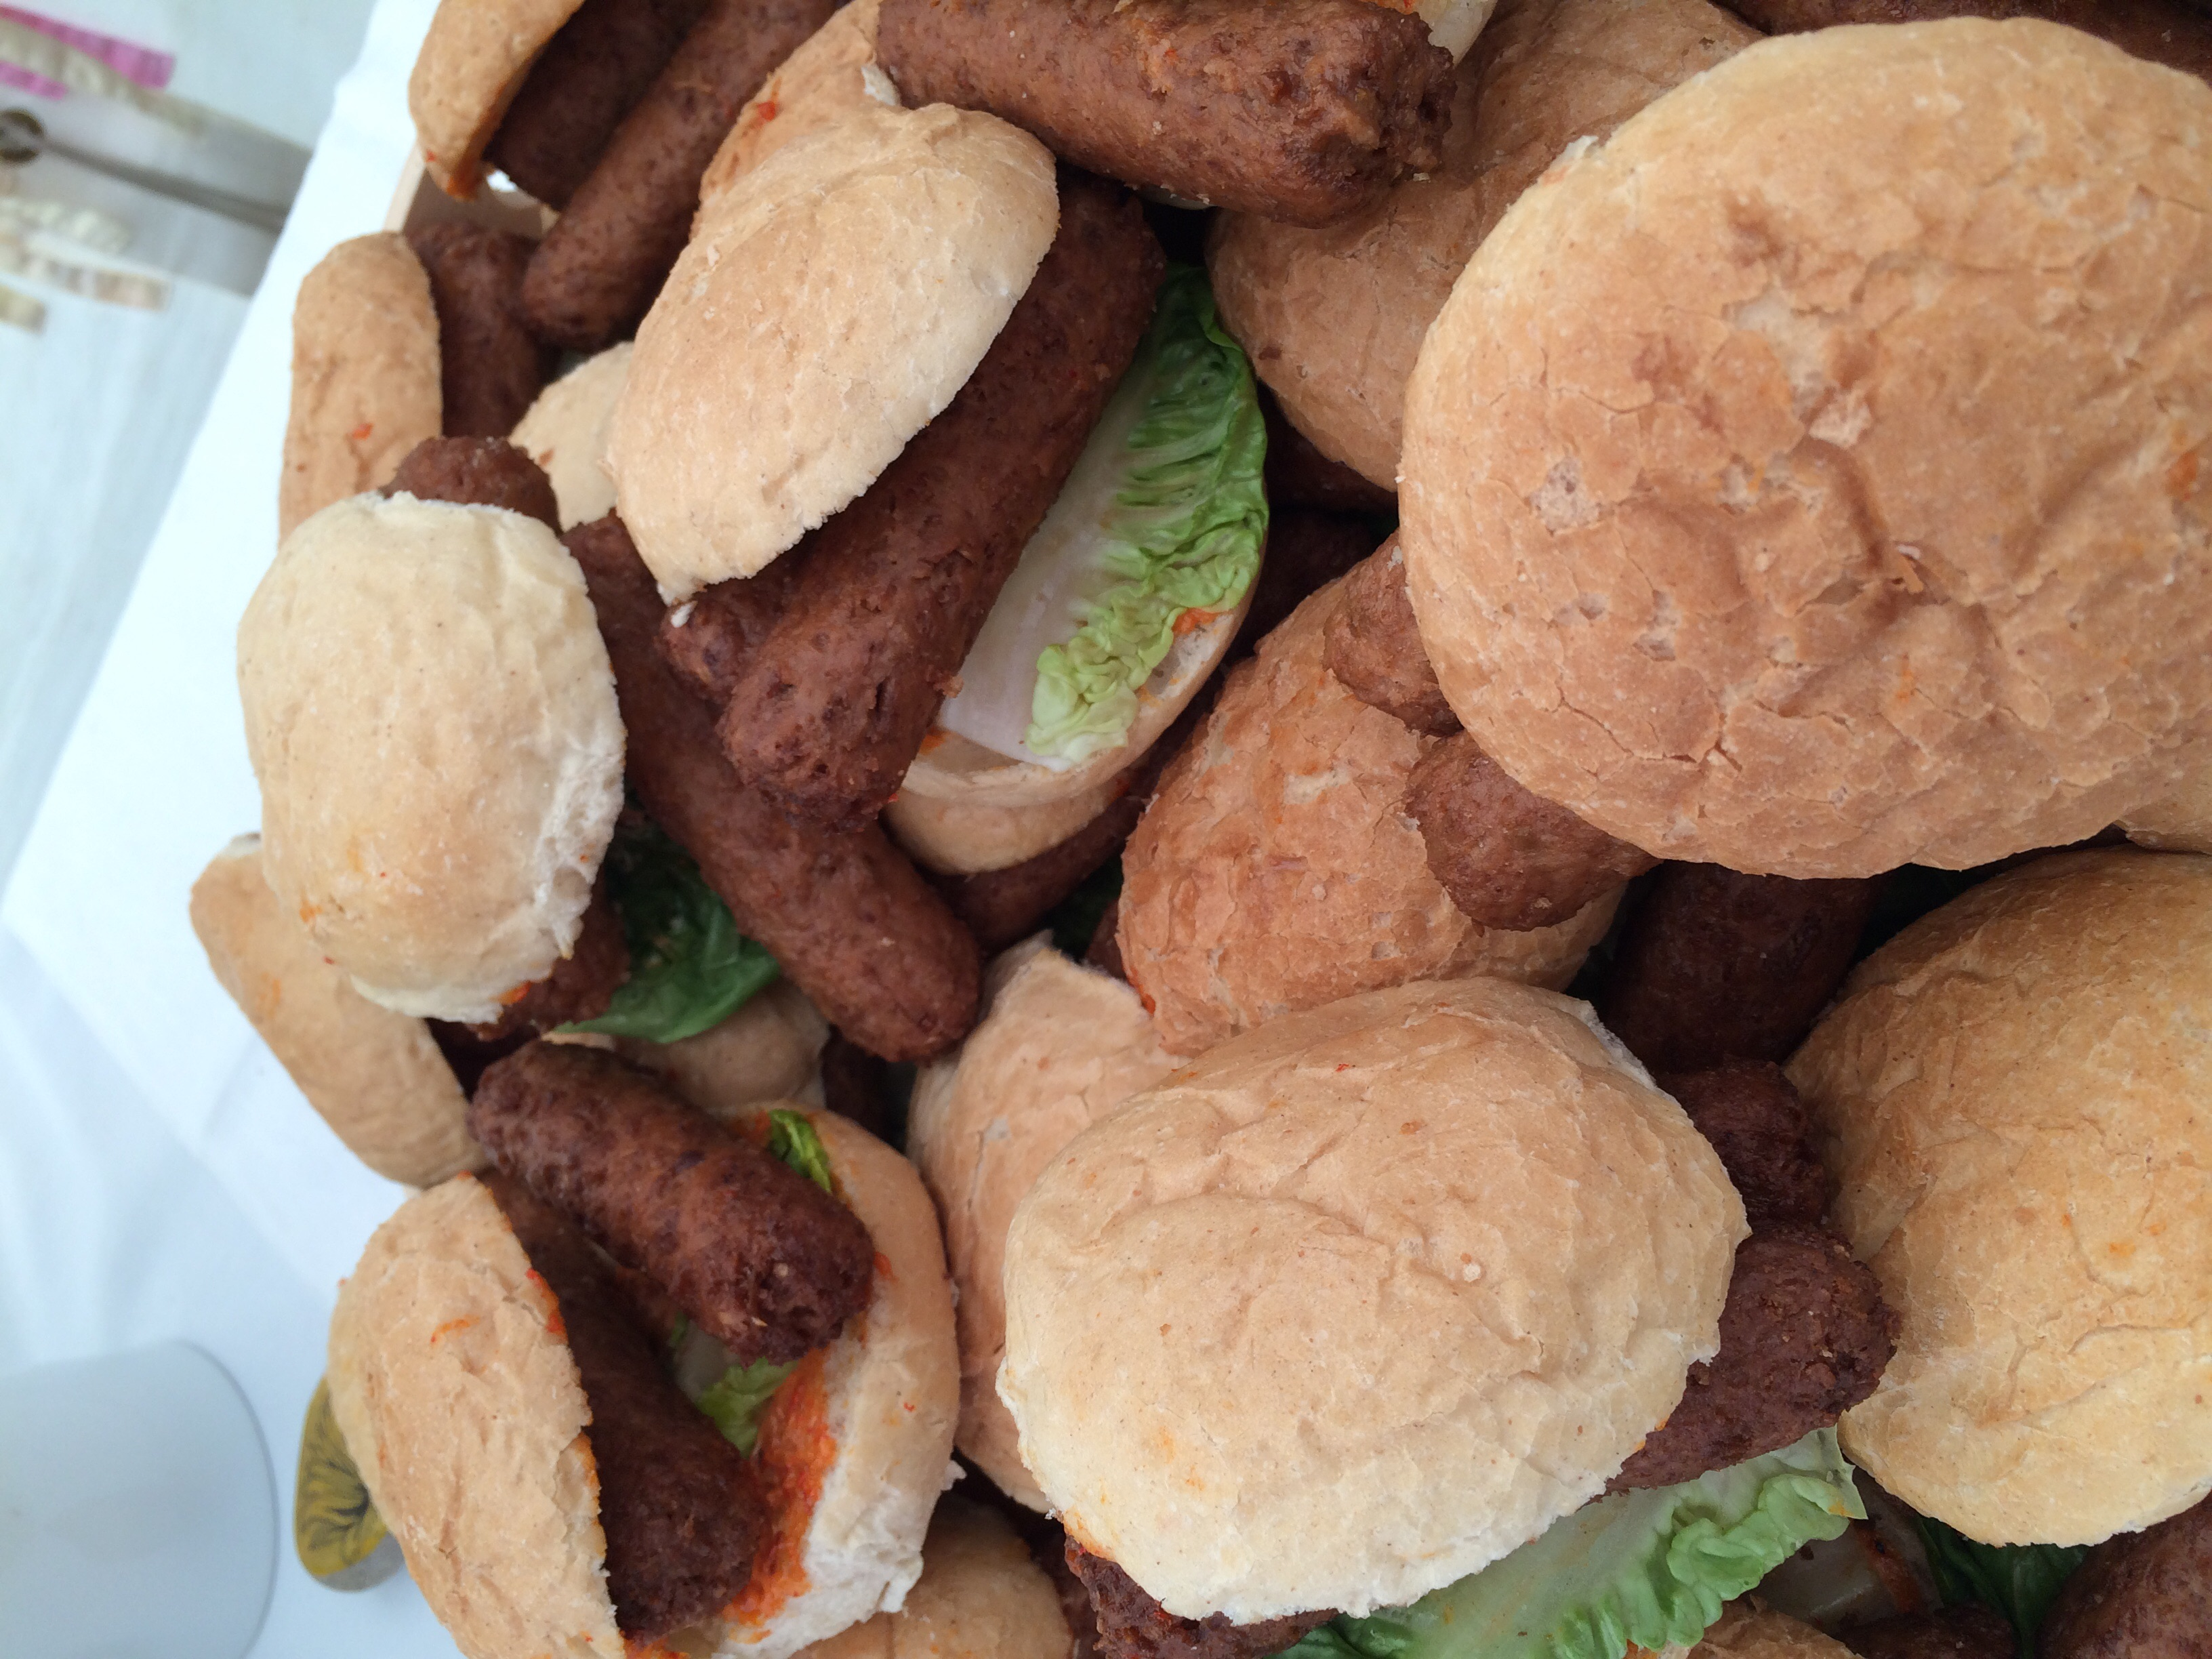 Veggie sausages in crusty buns are a very popular option